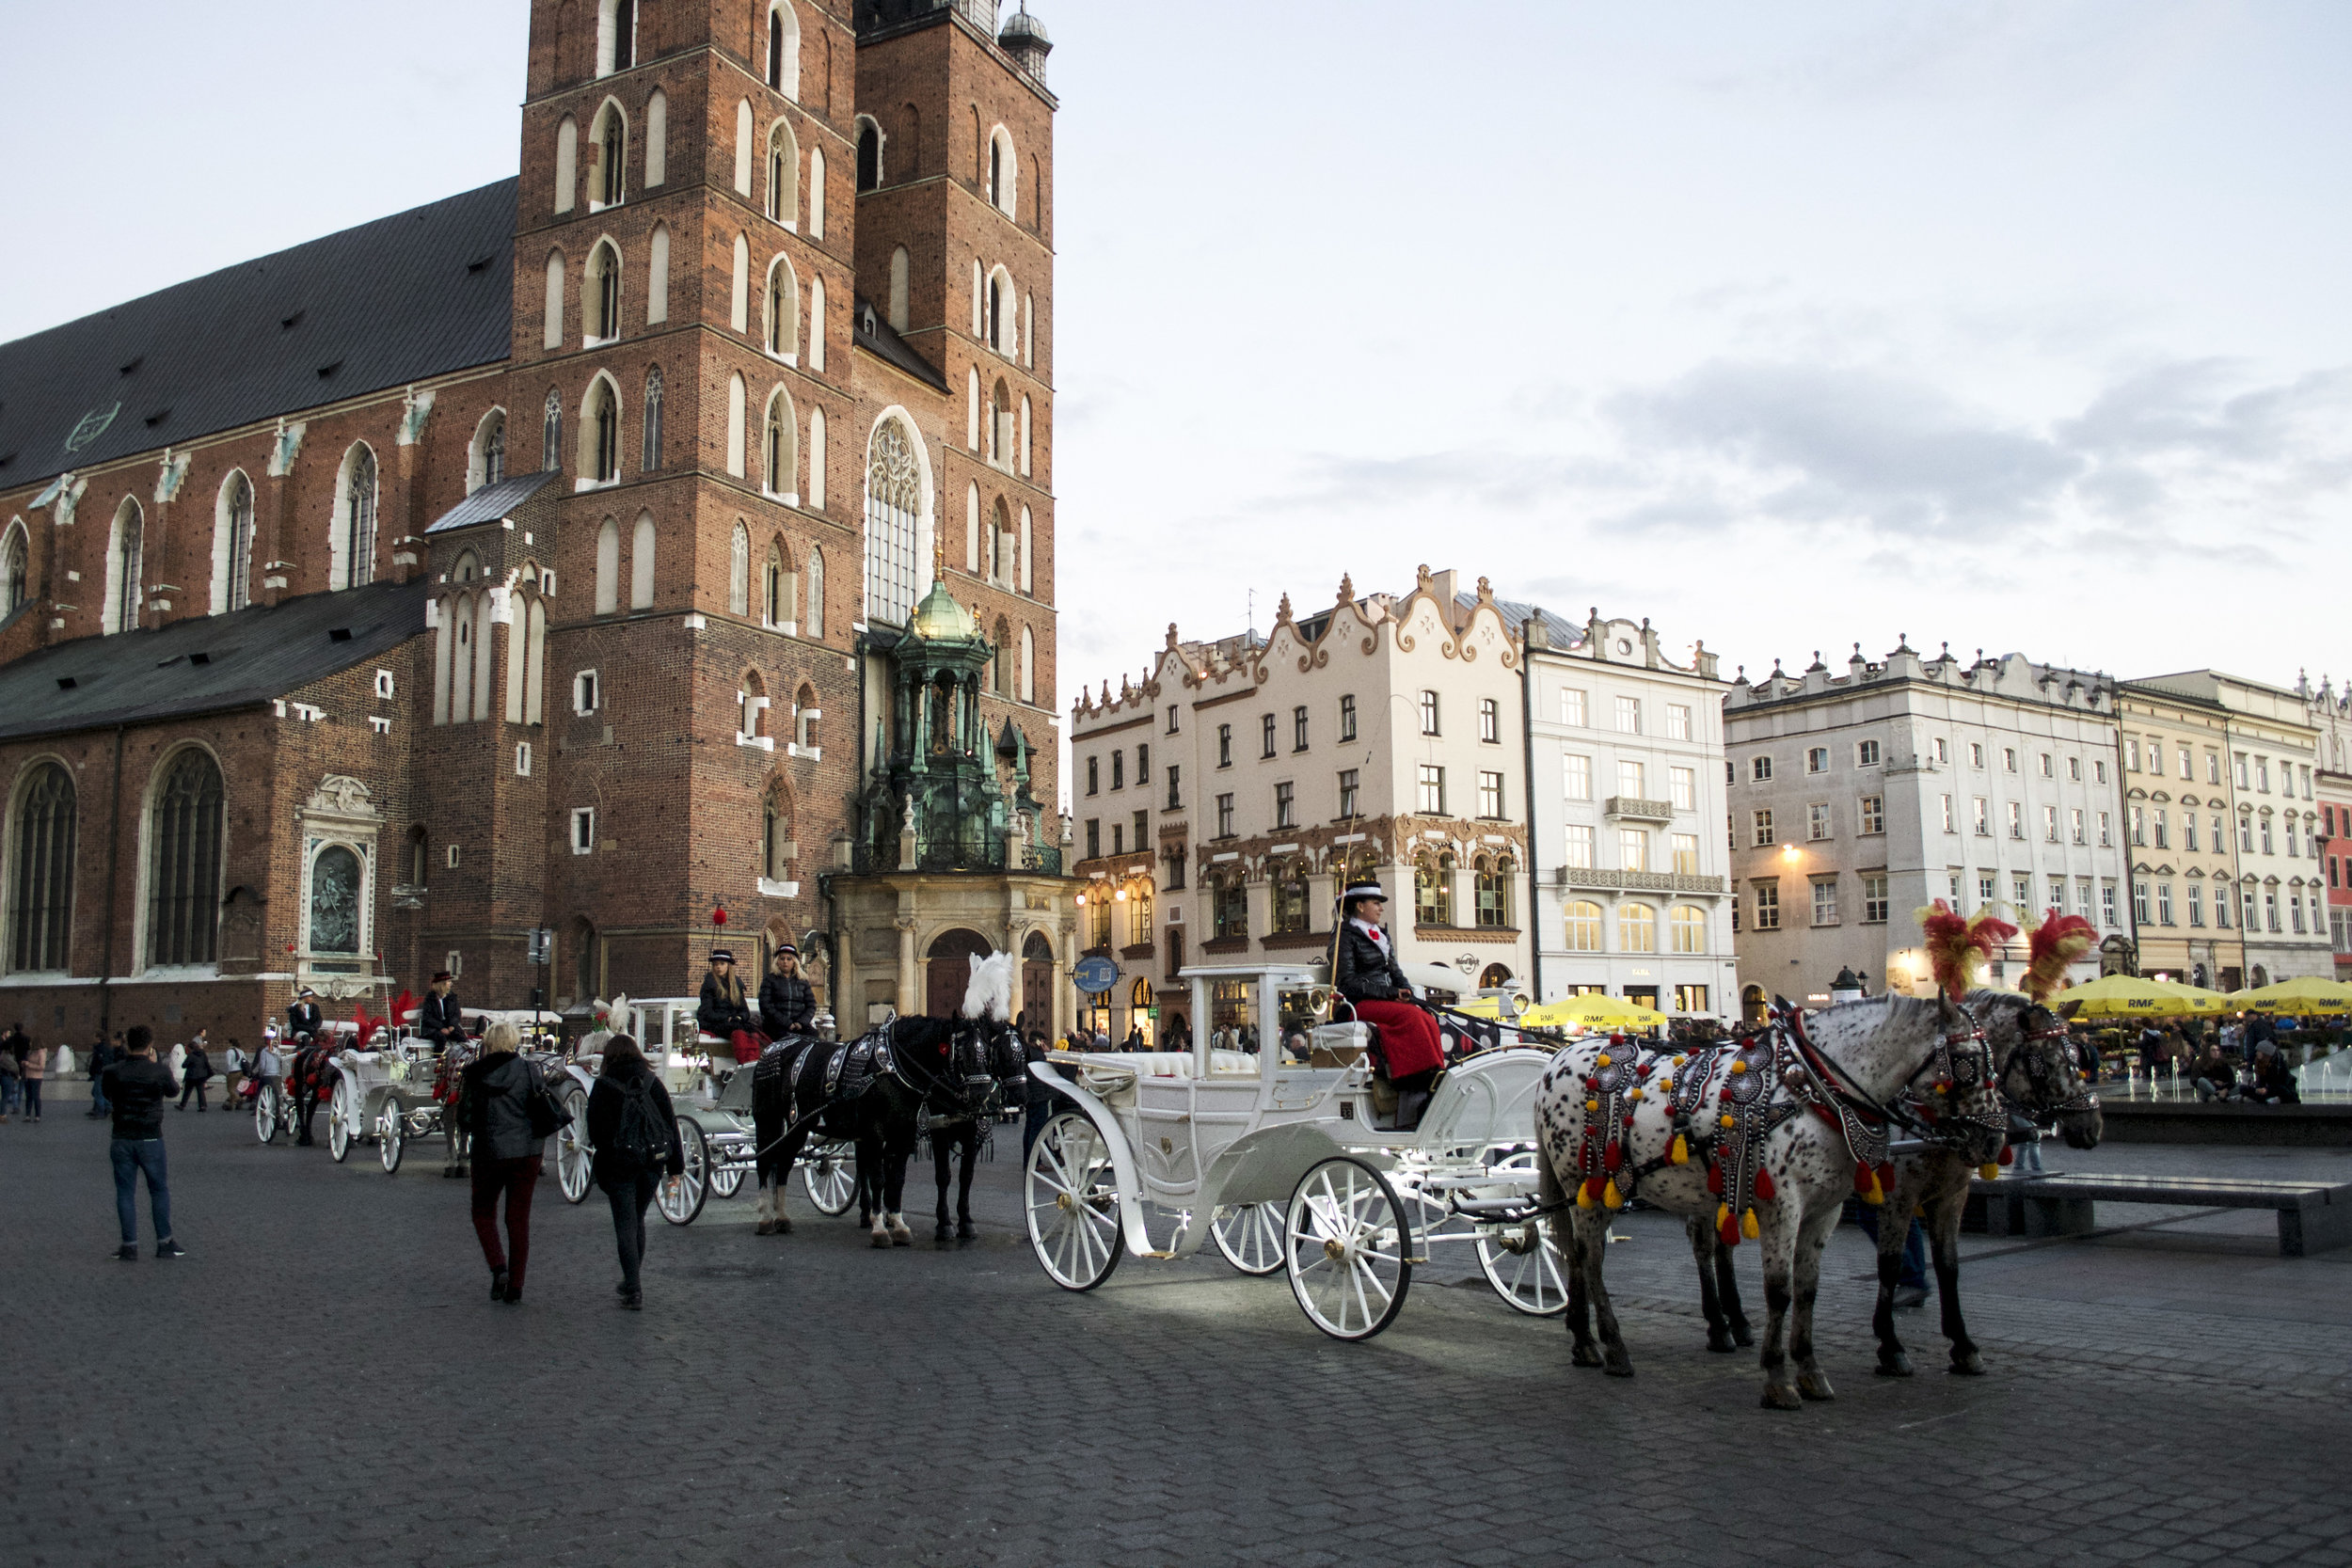 Carriages Old Town Krakow.jpg